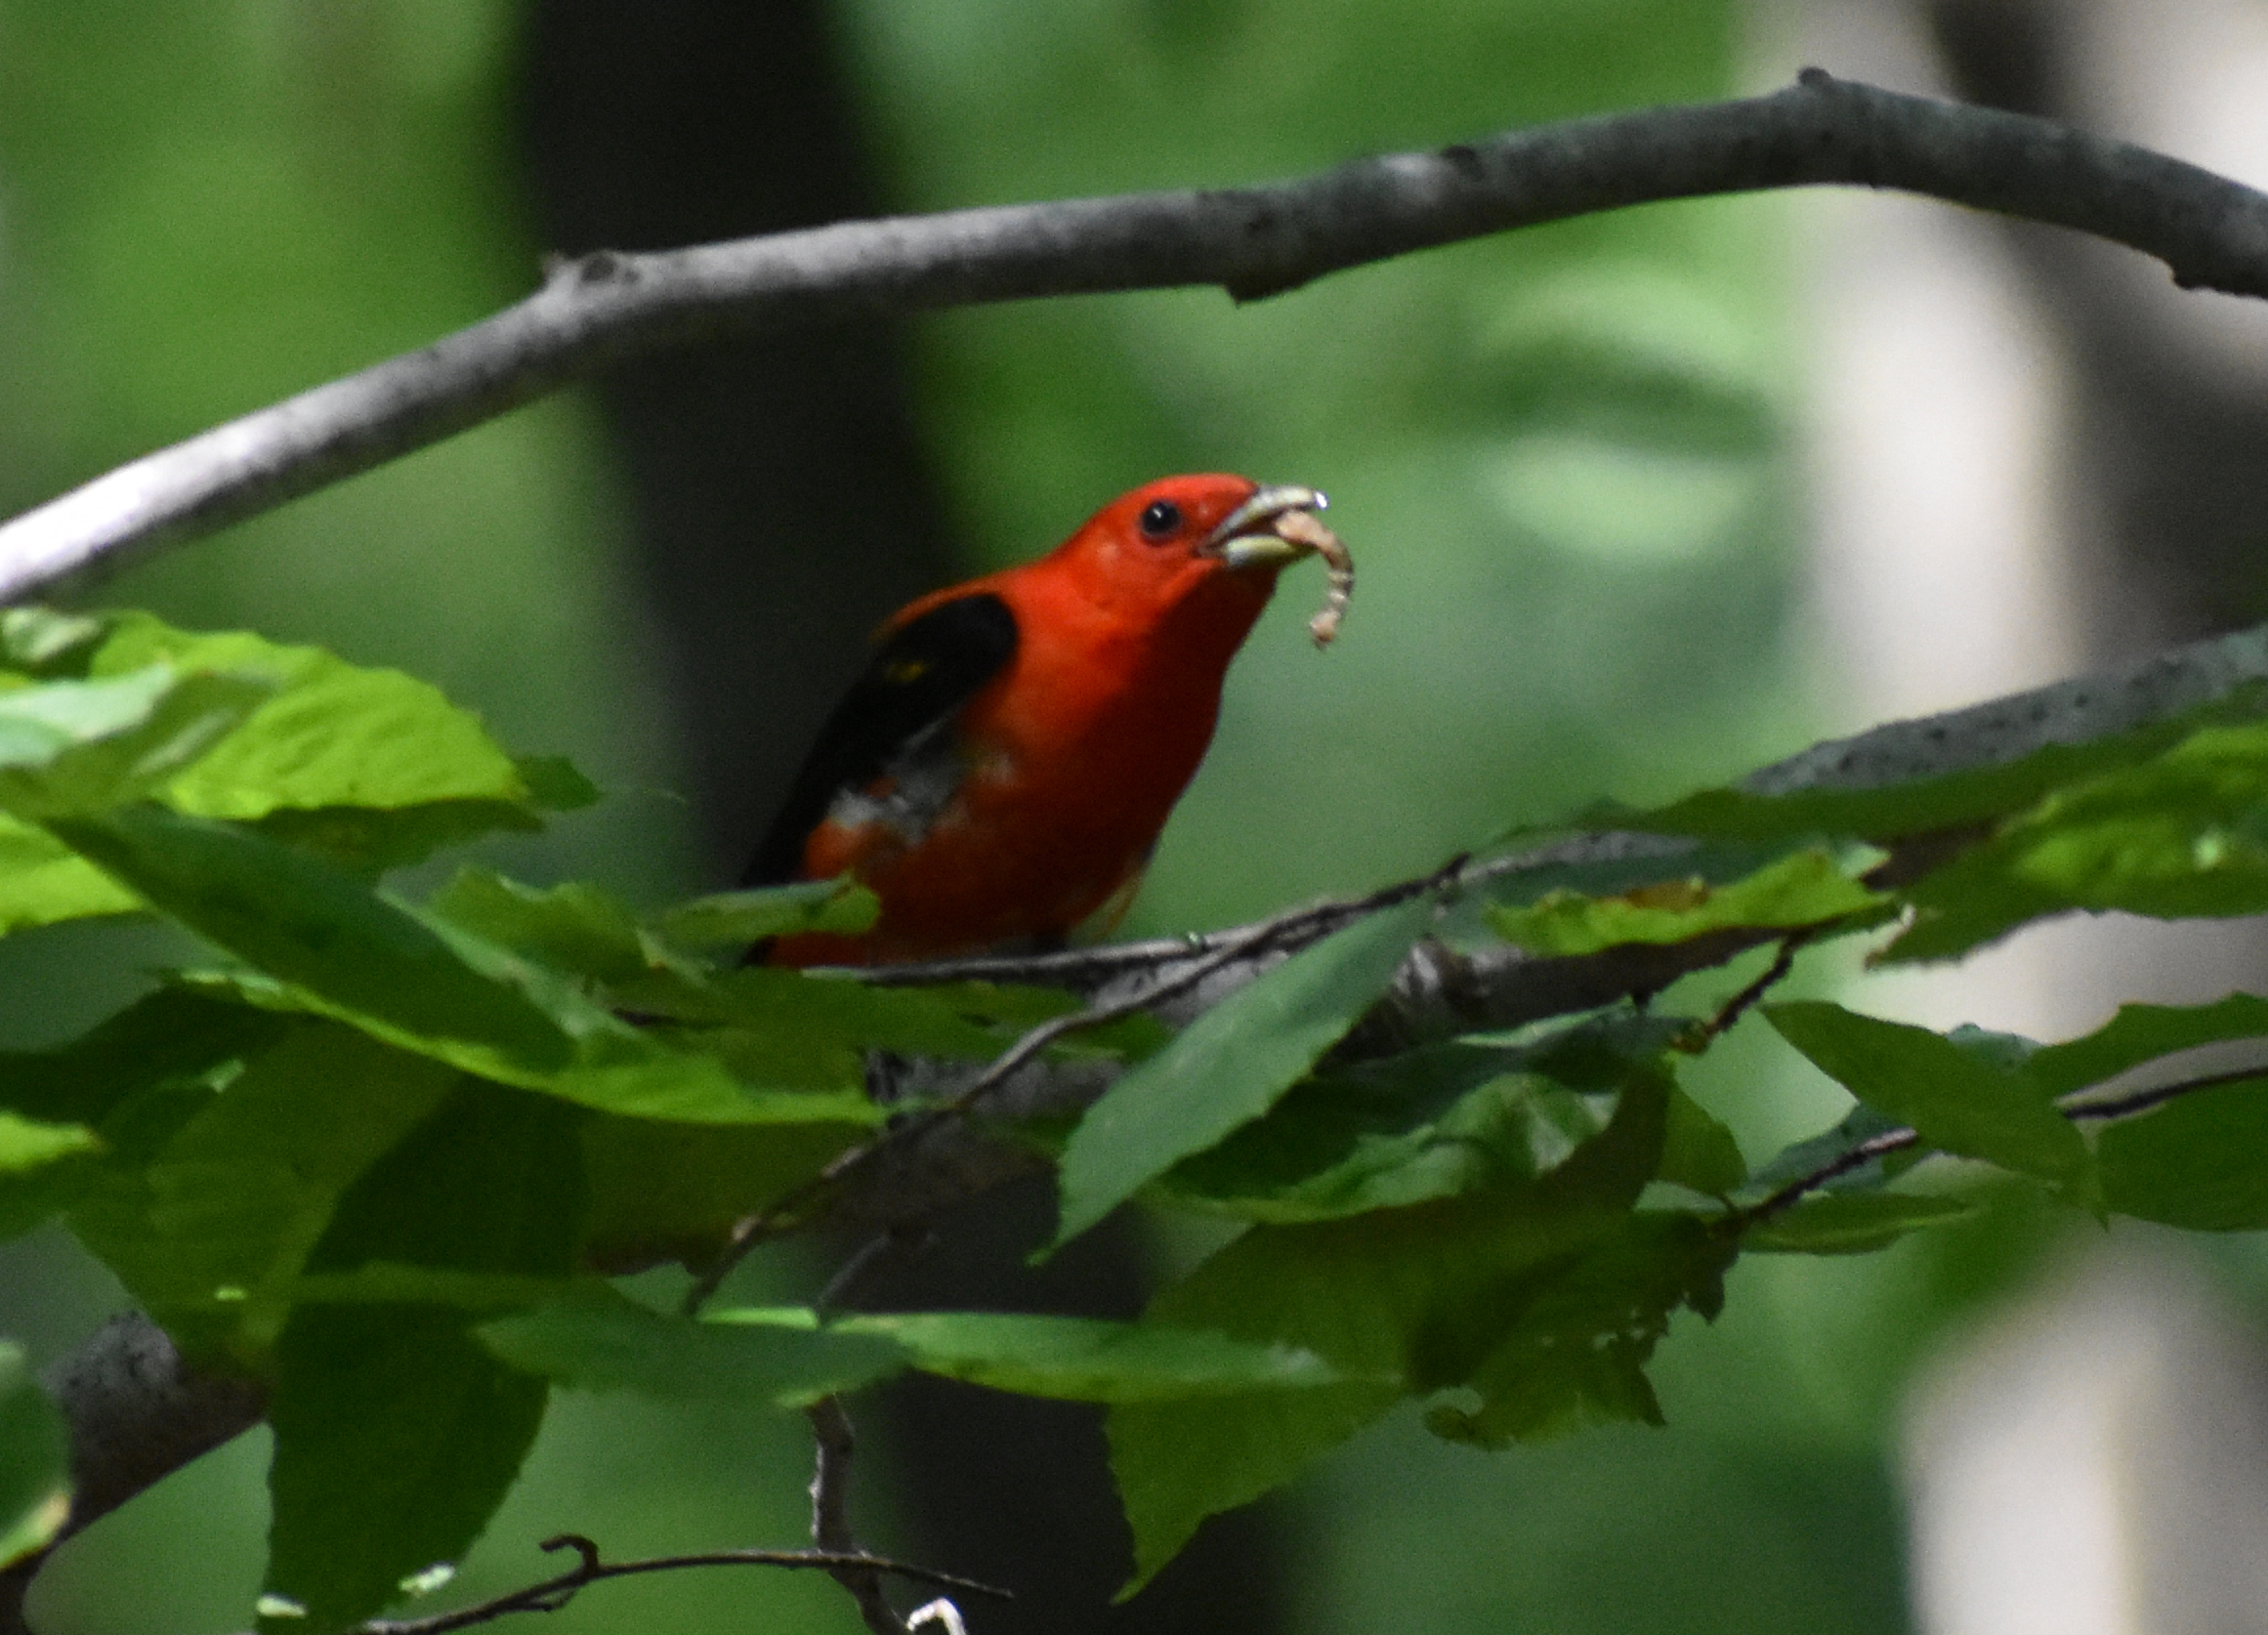 Scarlet Tanager eating caterpillar in American Beech